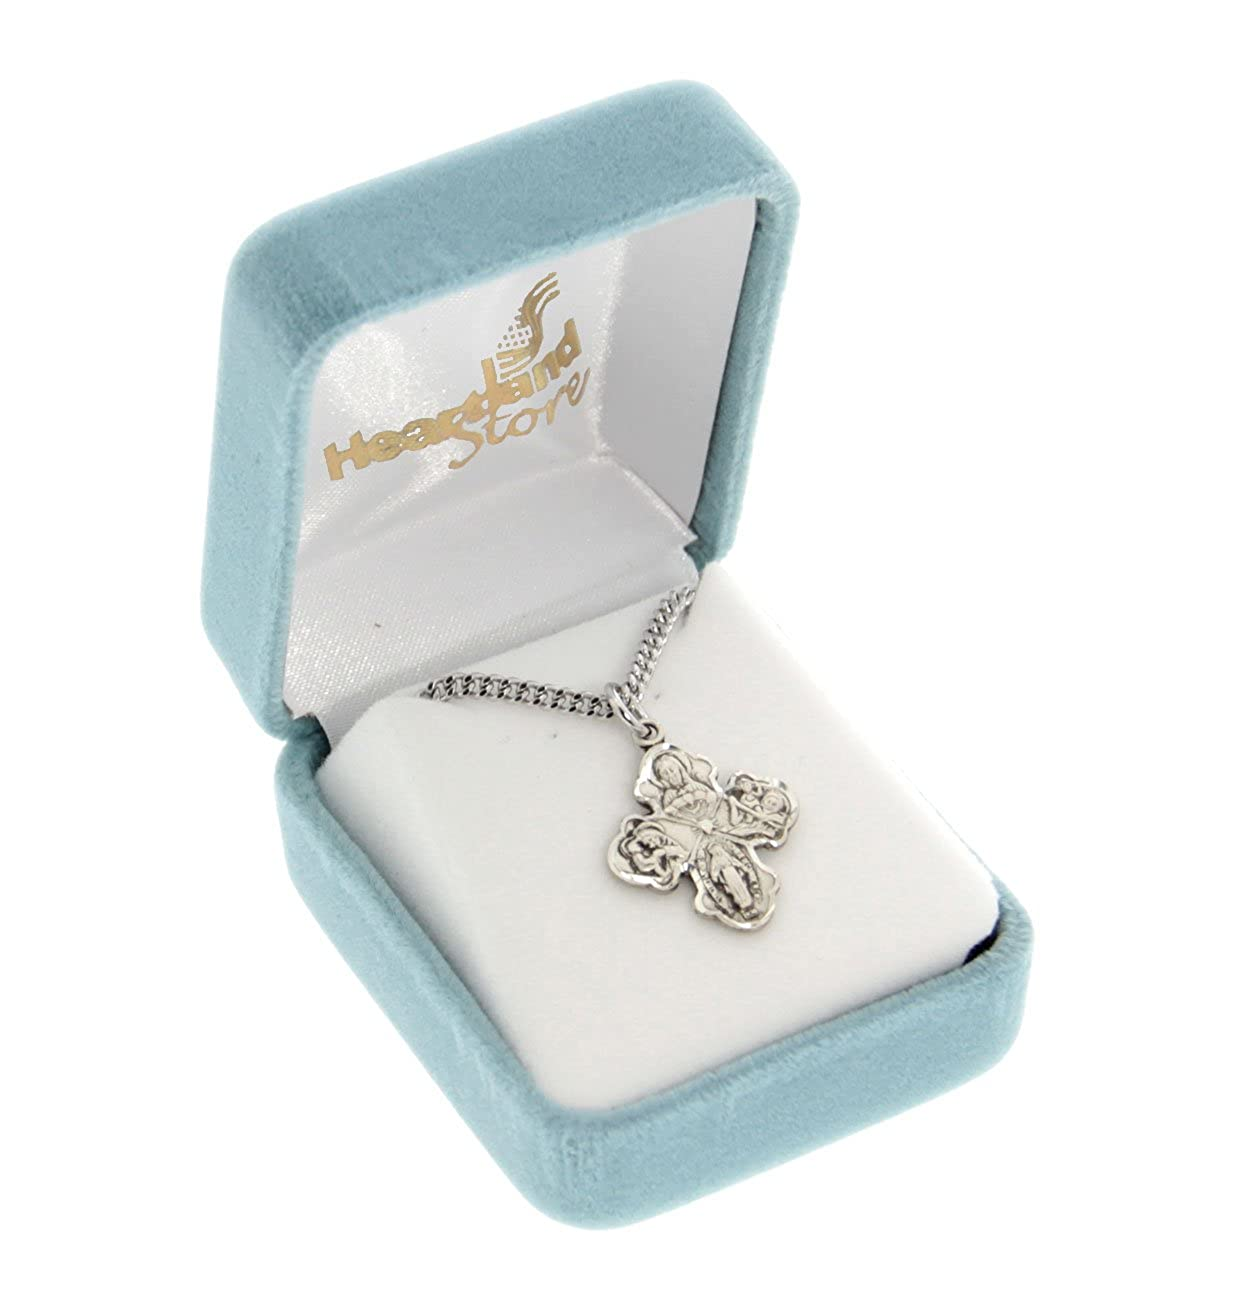 Heartland Sterling Silver Womens 4-Way Cross Necklace Chain Choice Best Quality USA Made